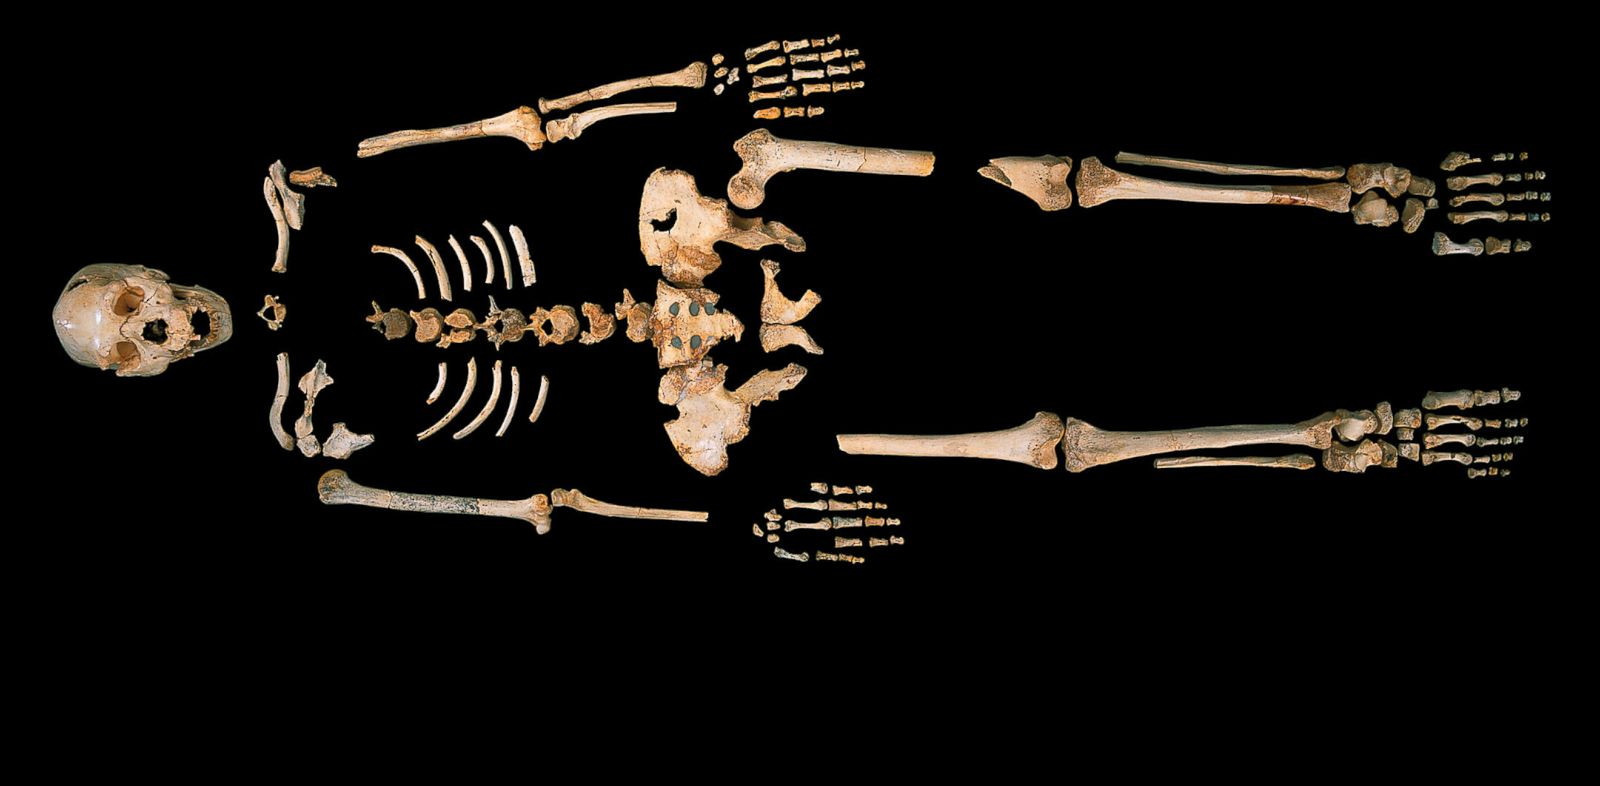 PHOTO: The skeleton of a Homo heidelbergensis from Sima de los Huesos, a unique cave site in Northern Spain.